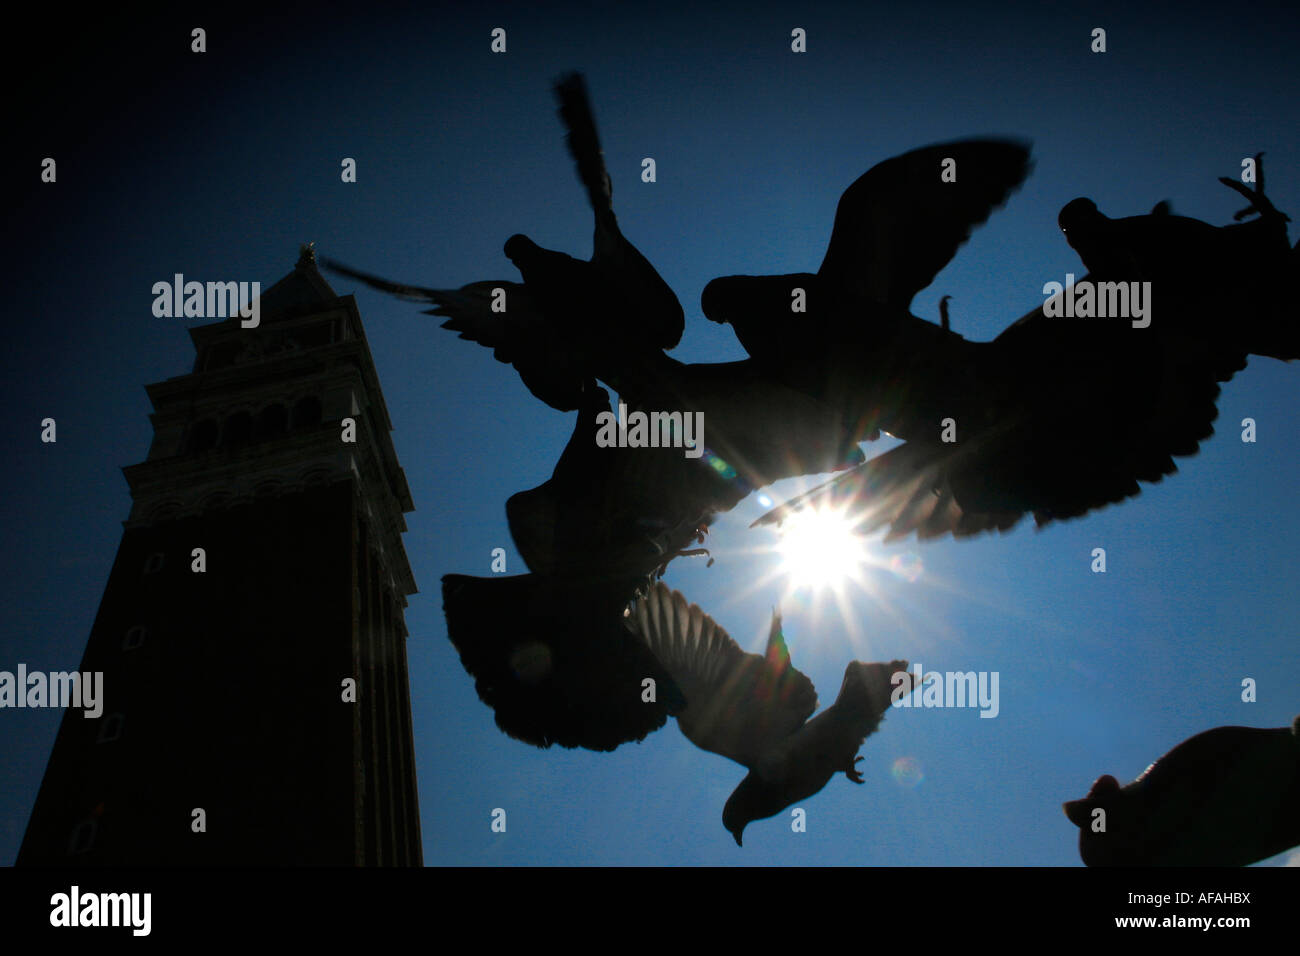 Pigeons at St. Mark's Square in Venice, Italy. Stock Photo